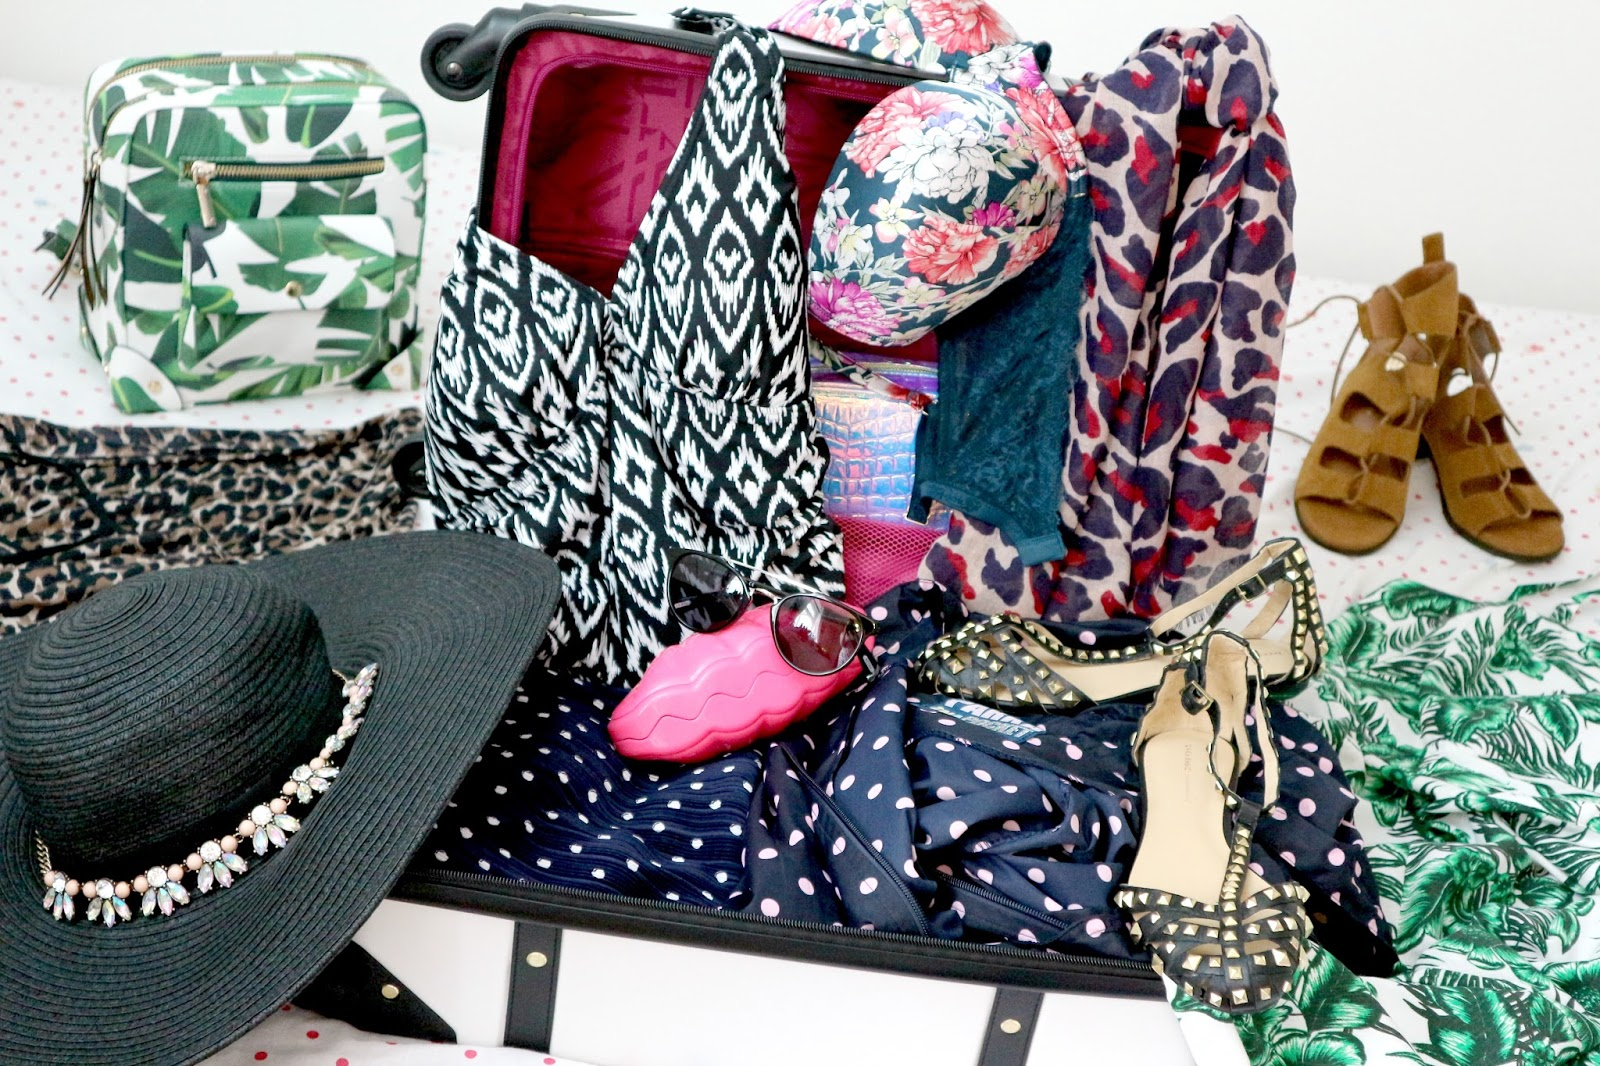 Hand Luggage Packing